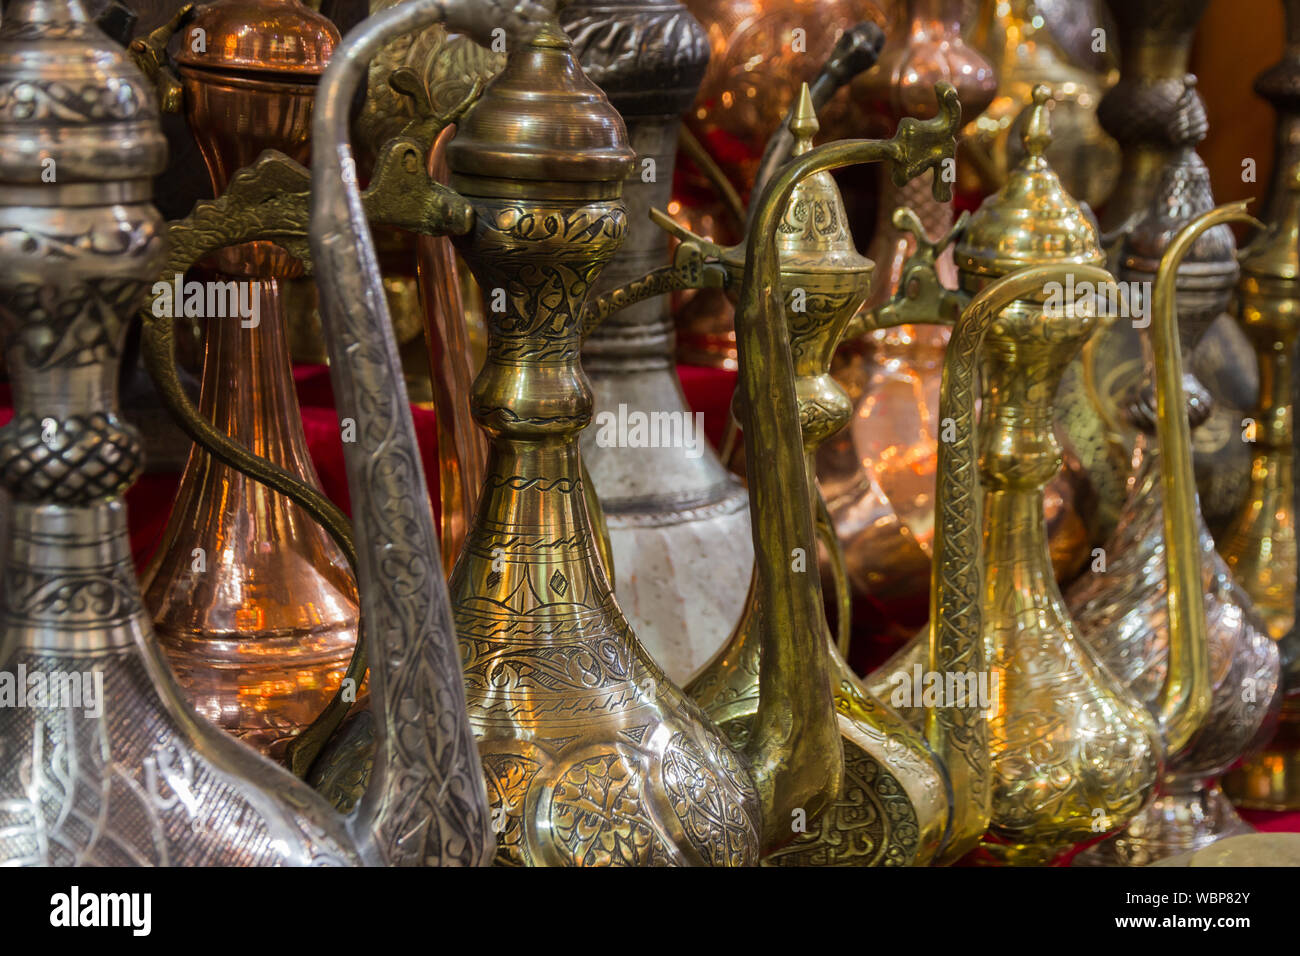 Decorative old style metal pitchers for sale; Istanbul, Turkey. Stock Photo